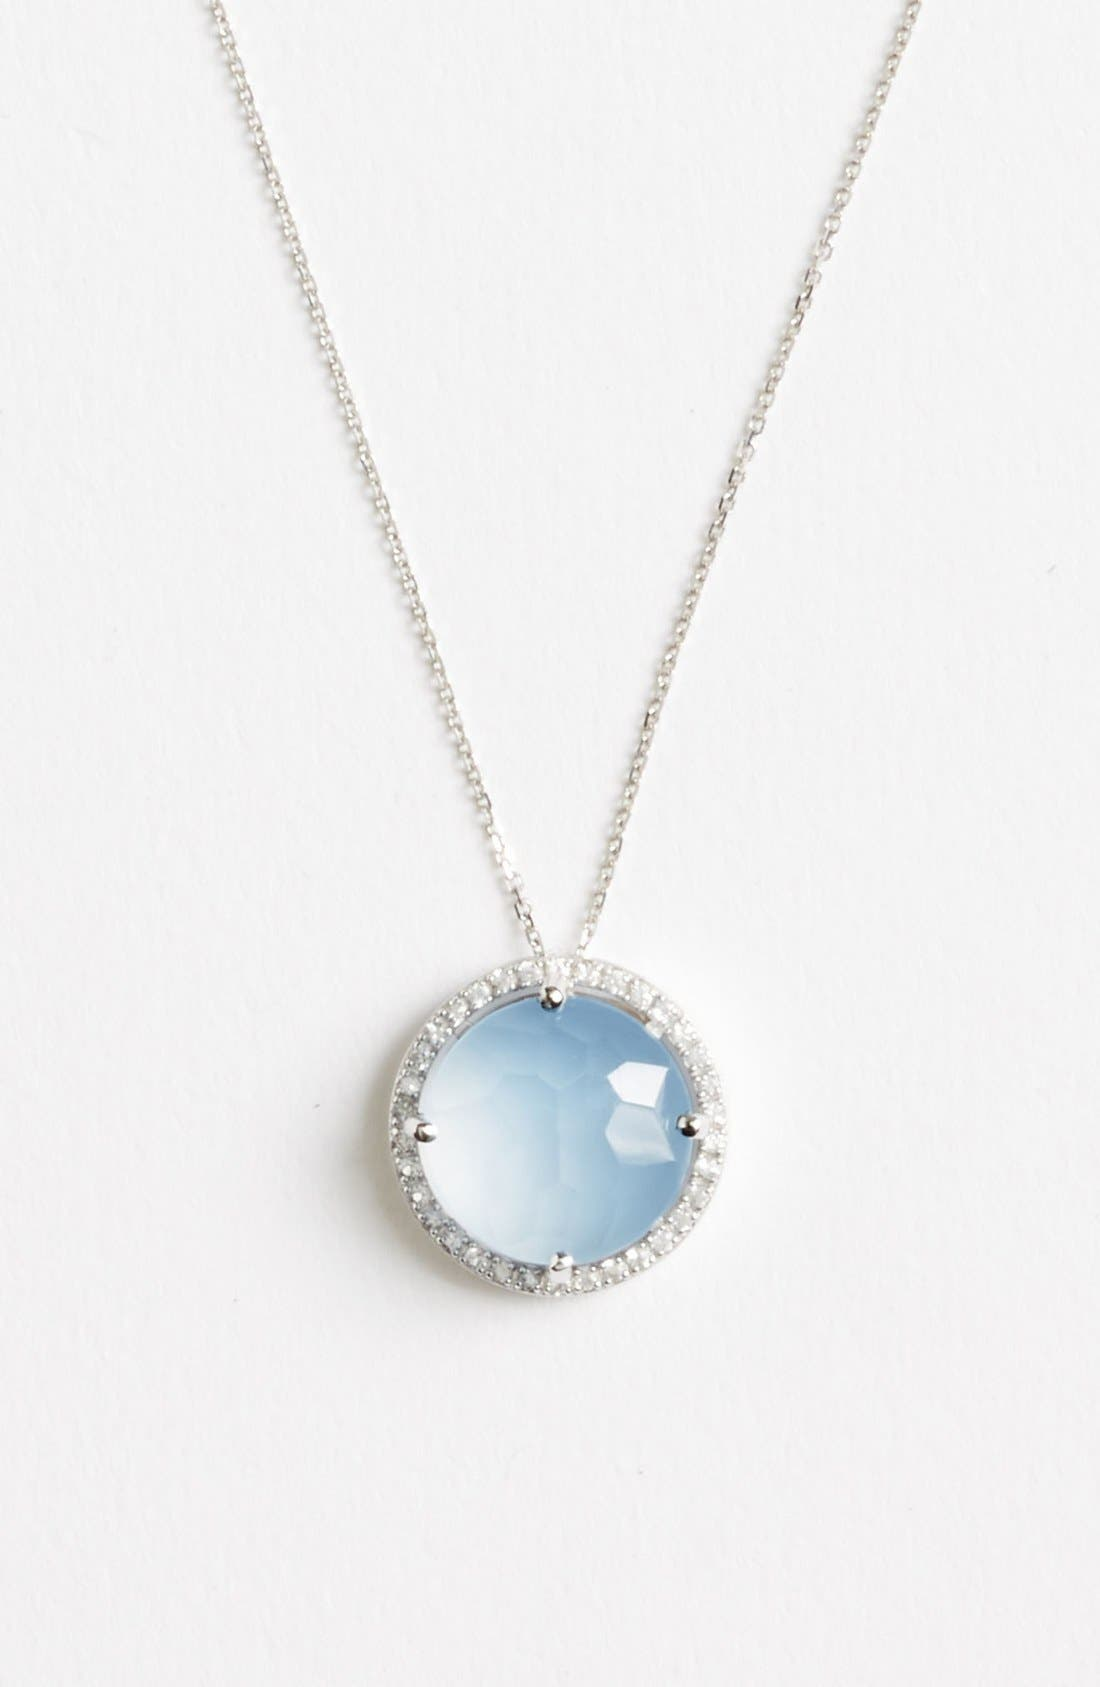 Alternate Image 1 Selected - KALAN by Suzanne Kalan Stone & Sapphire Pendant Necklace